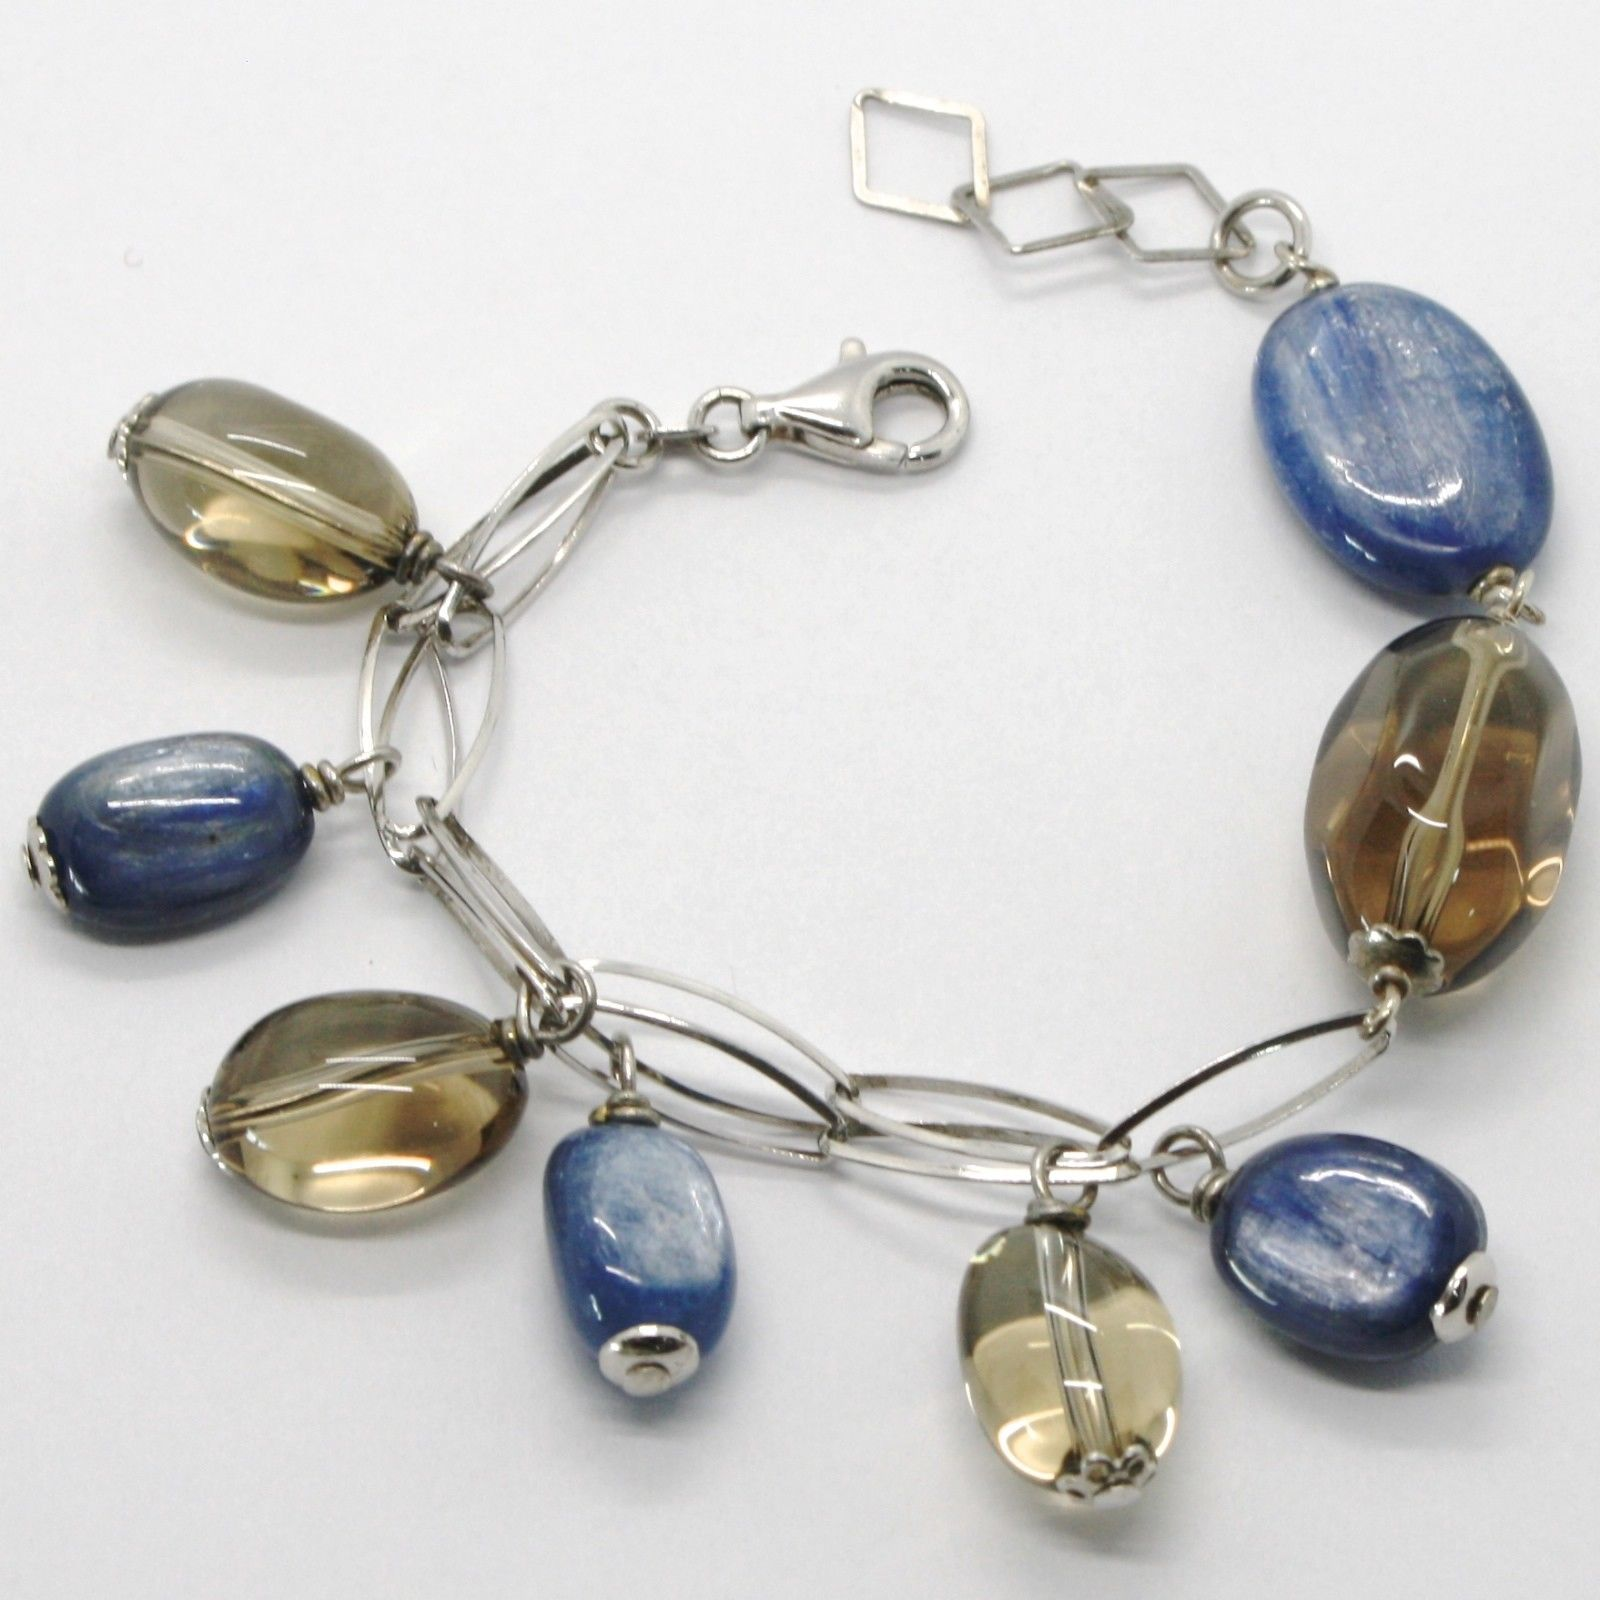 SILVER 925 BRACELET RHODIUM WITH KYANITE AND QUARTZ SMOKED MADE IN ITALY